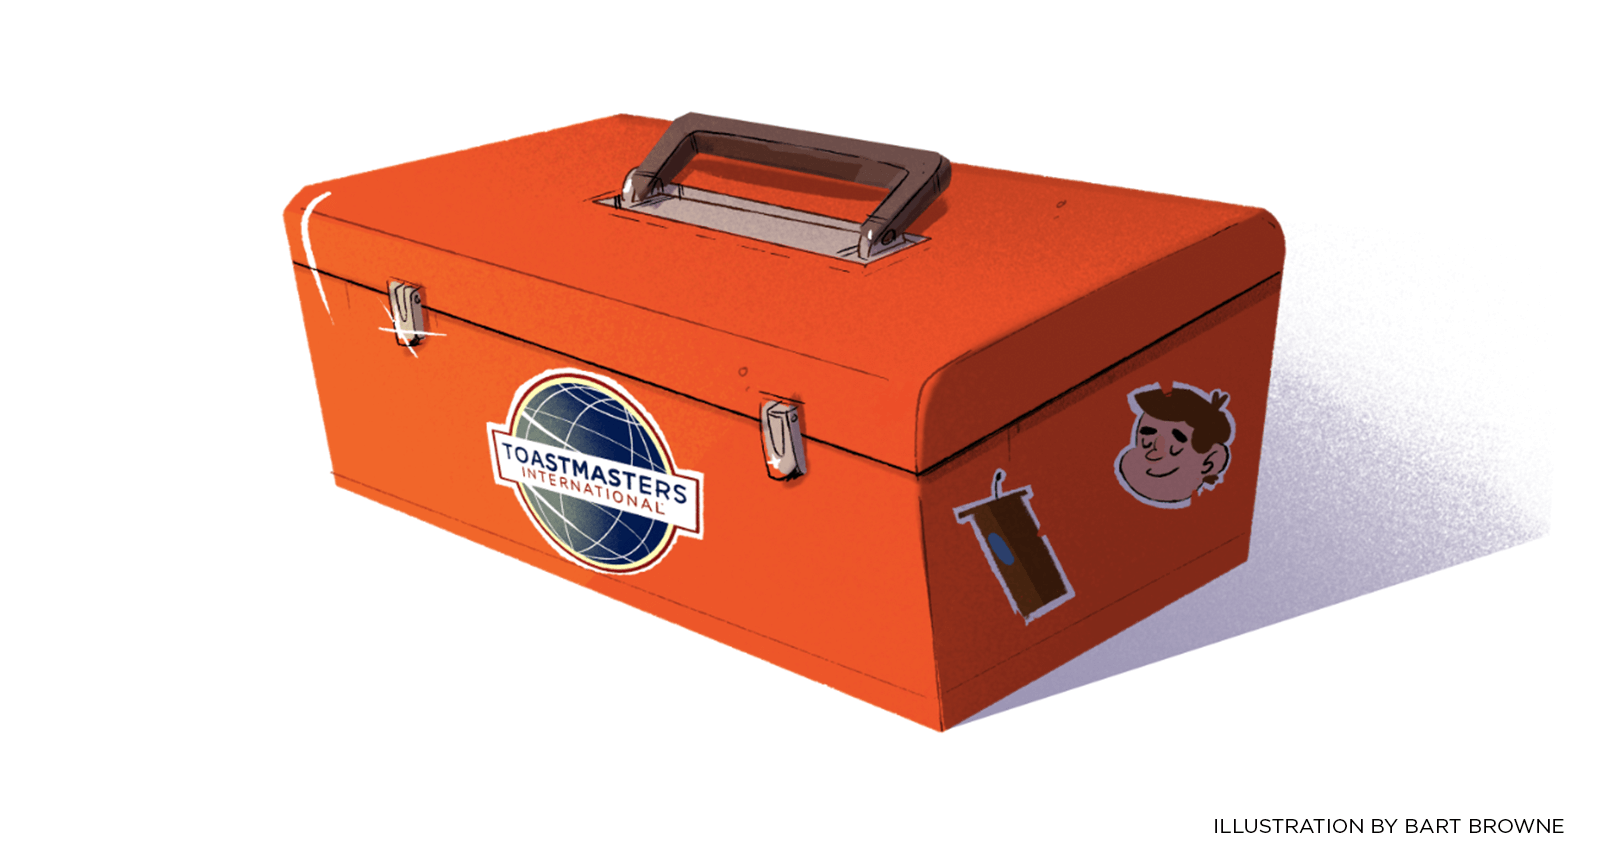 Illustration of orange toolbox with Toastmasters logo